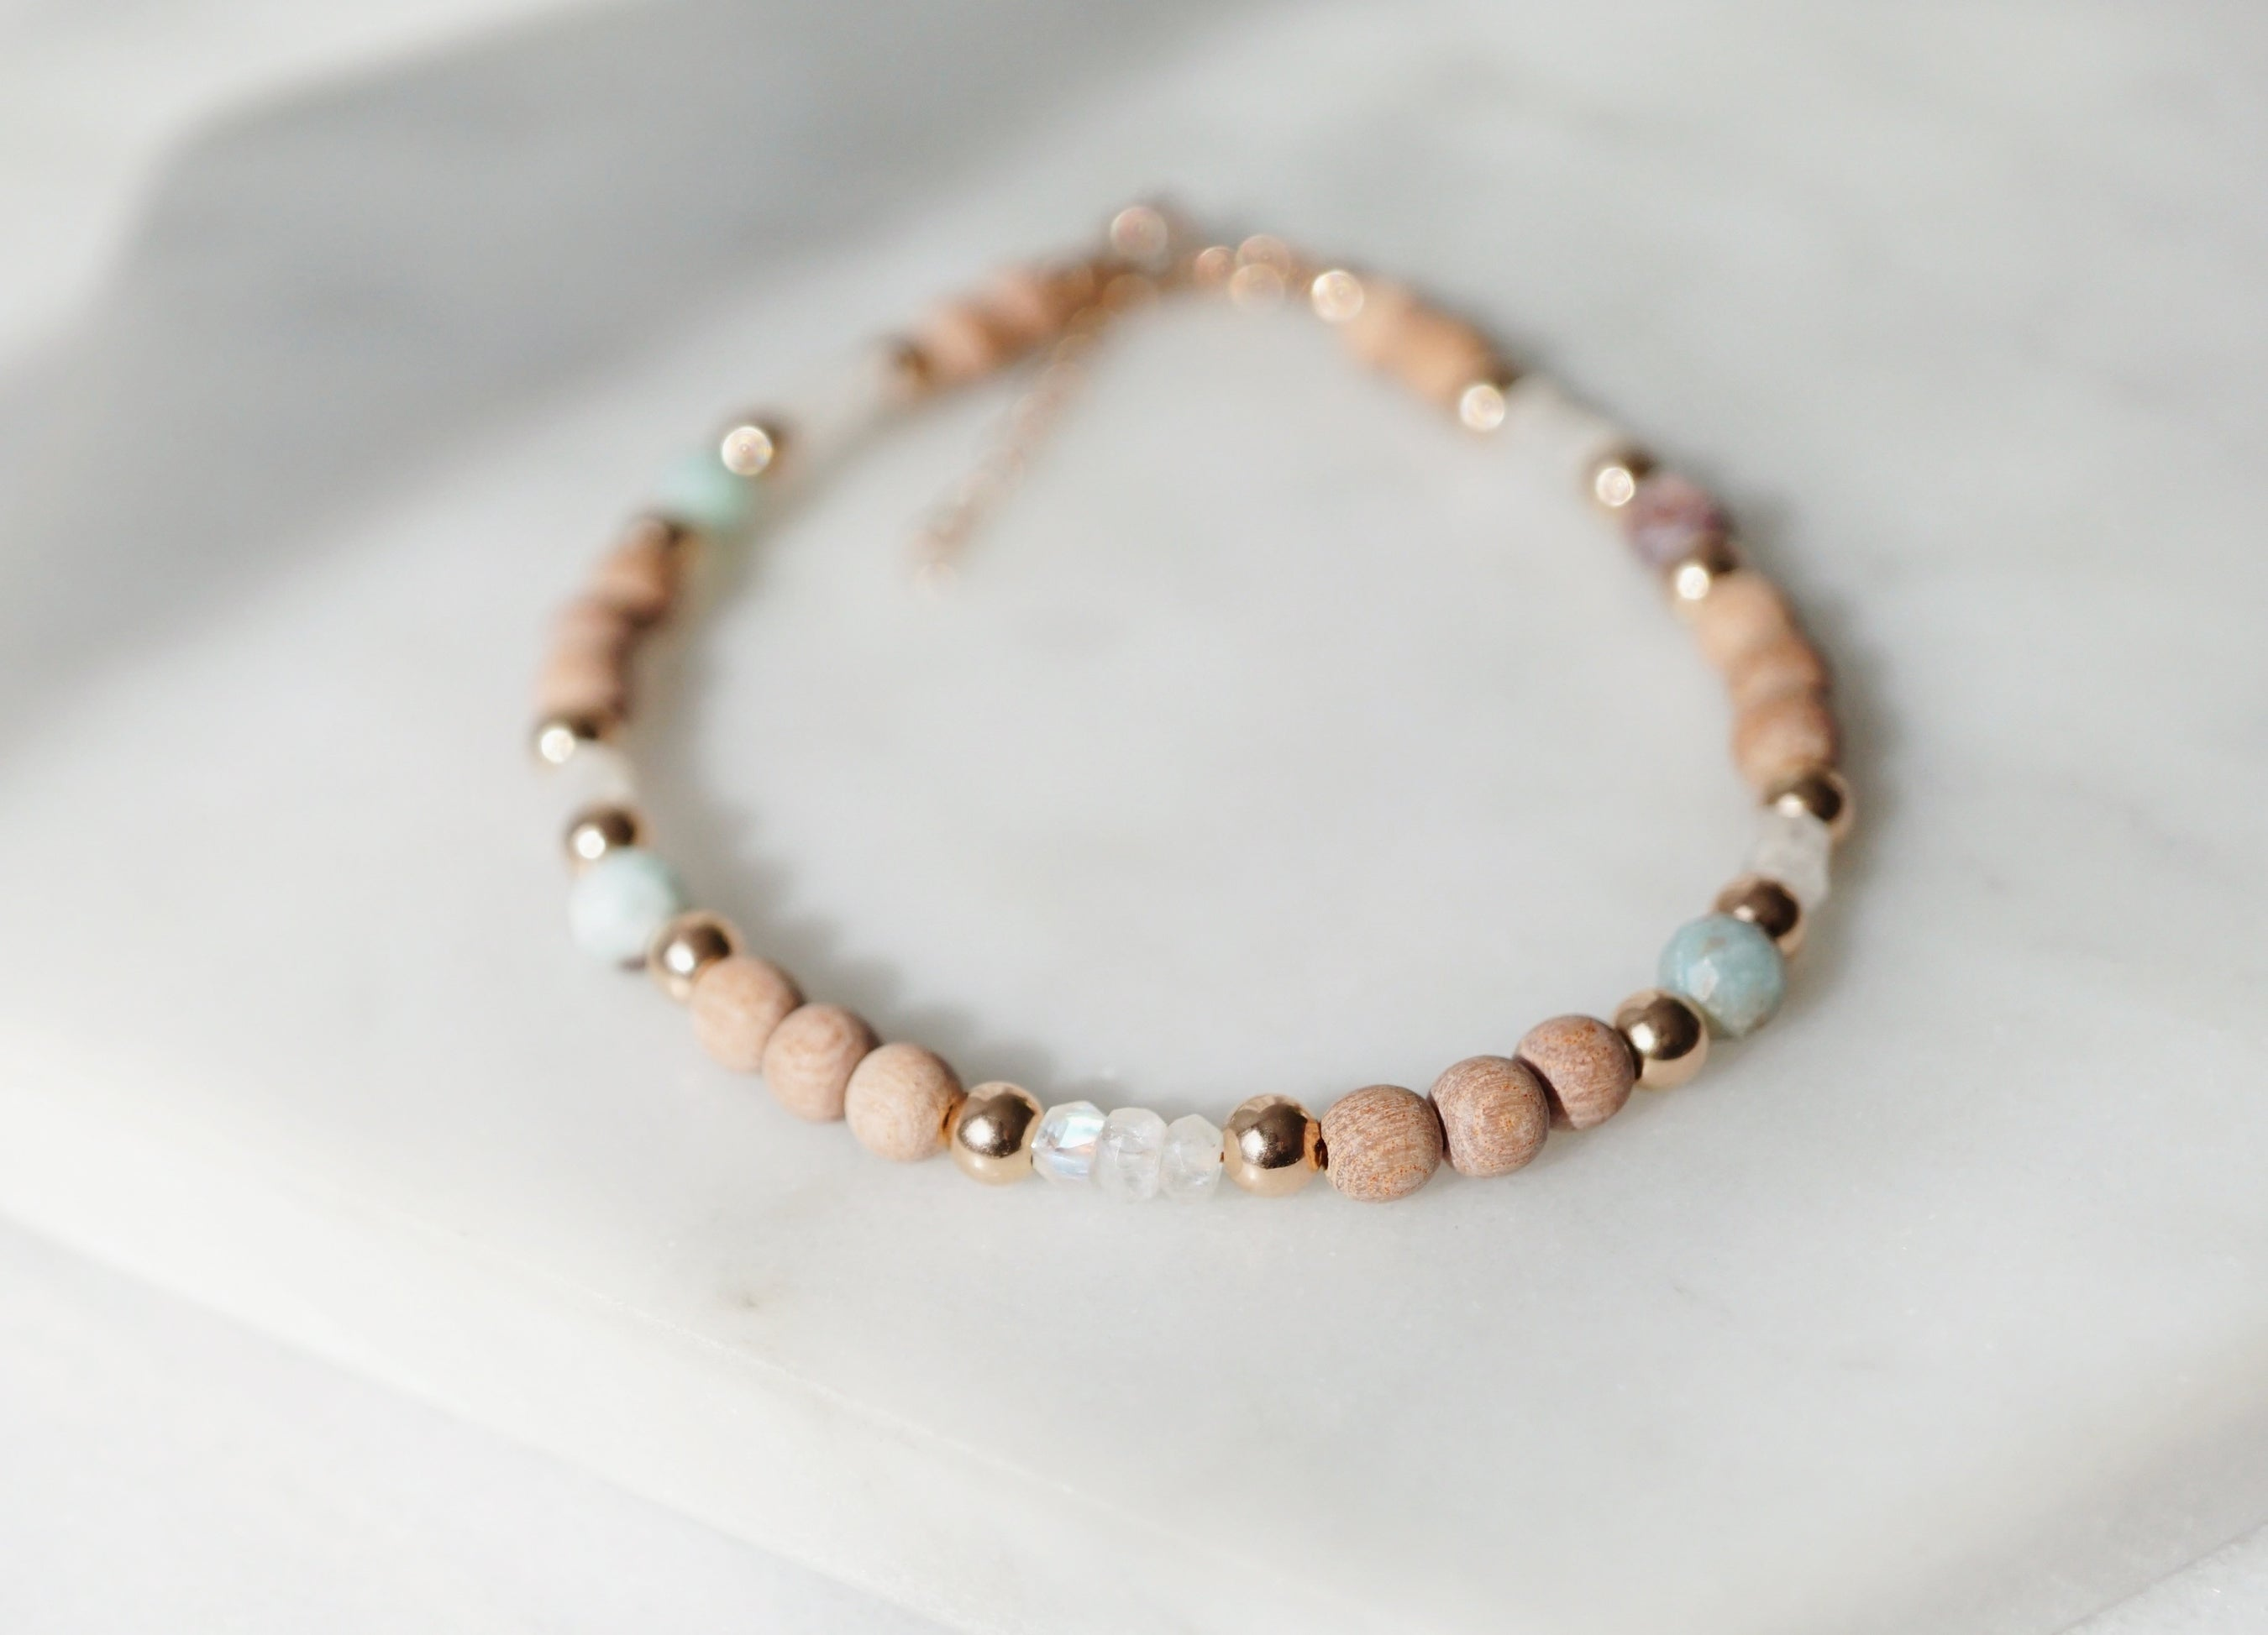 One-of-a-kind Dainty Rose Gold Rosewood, Larimar, Moonstone Aromatherapy Bracelet